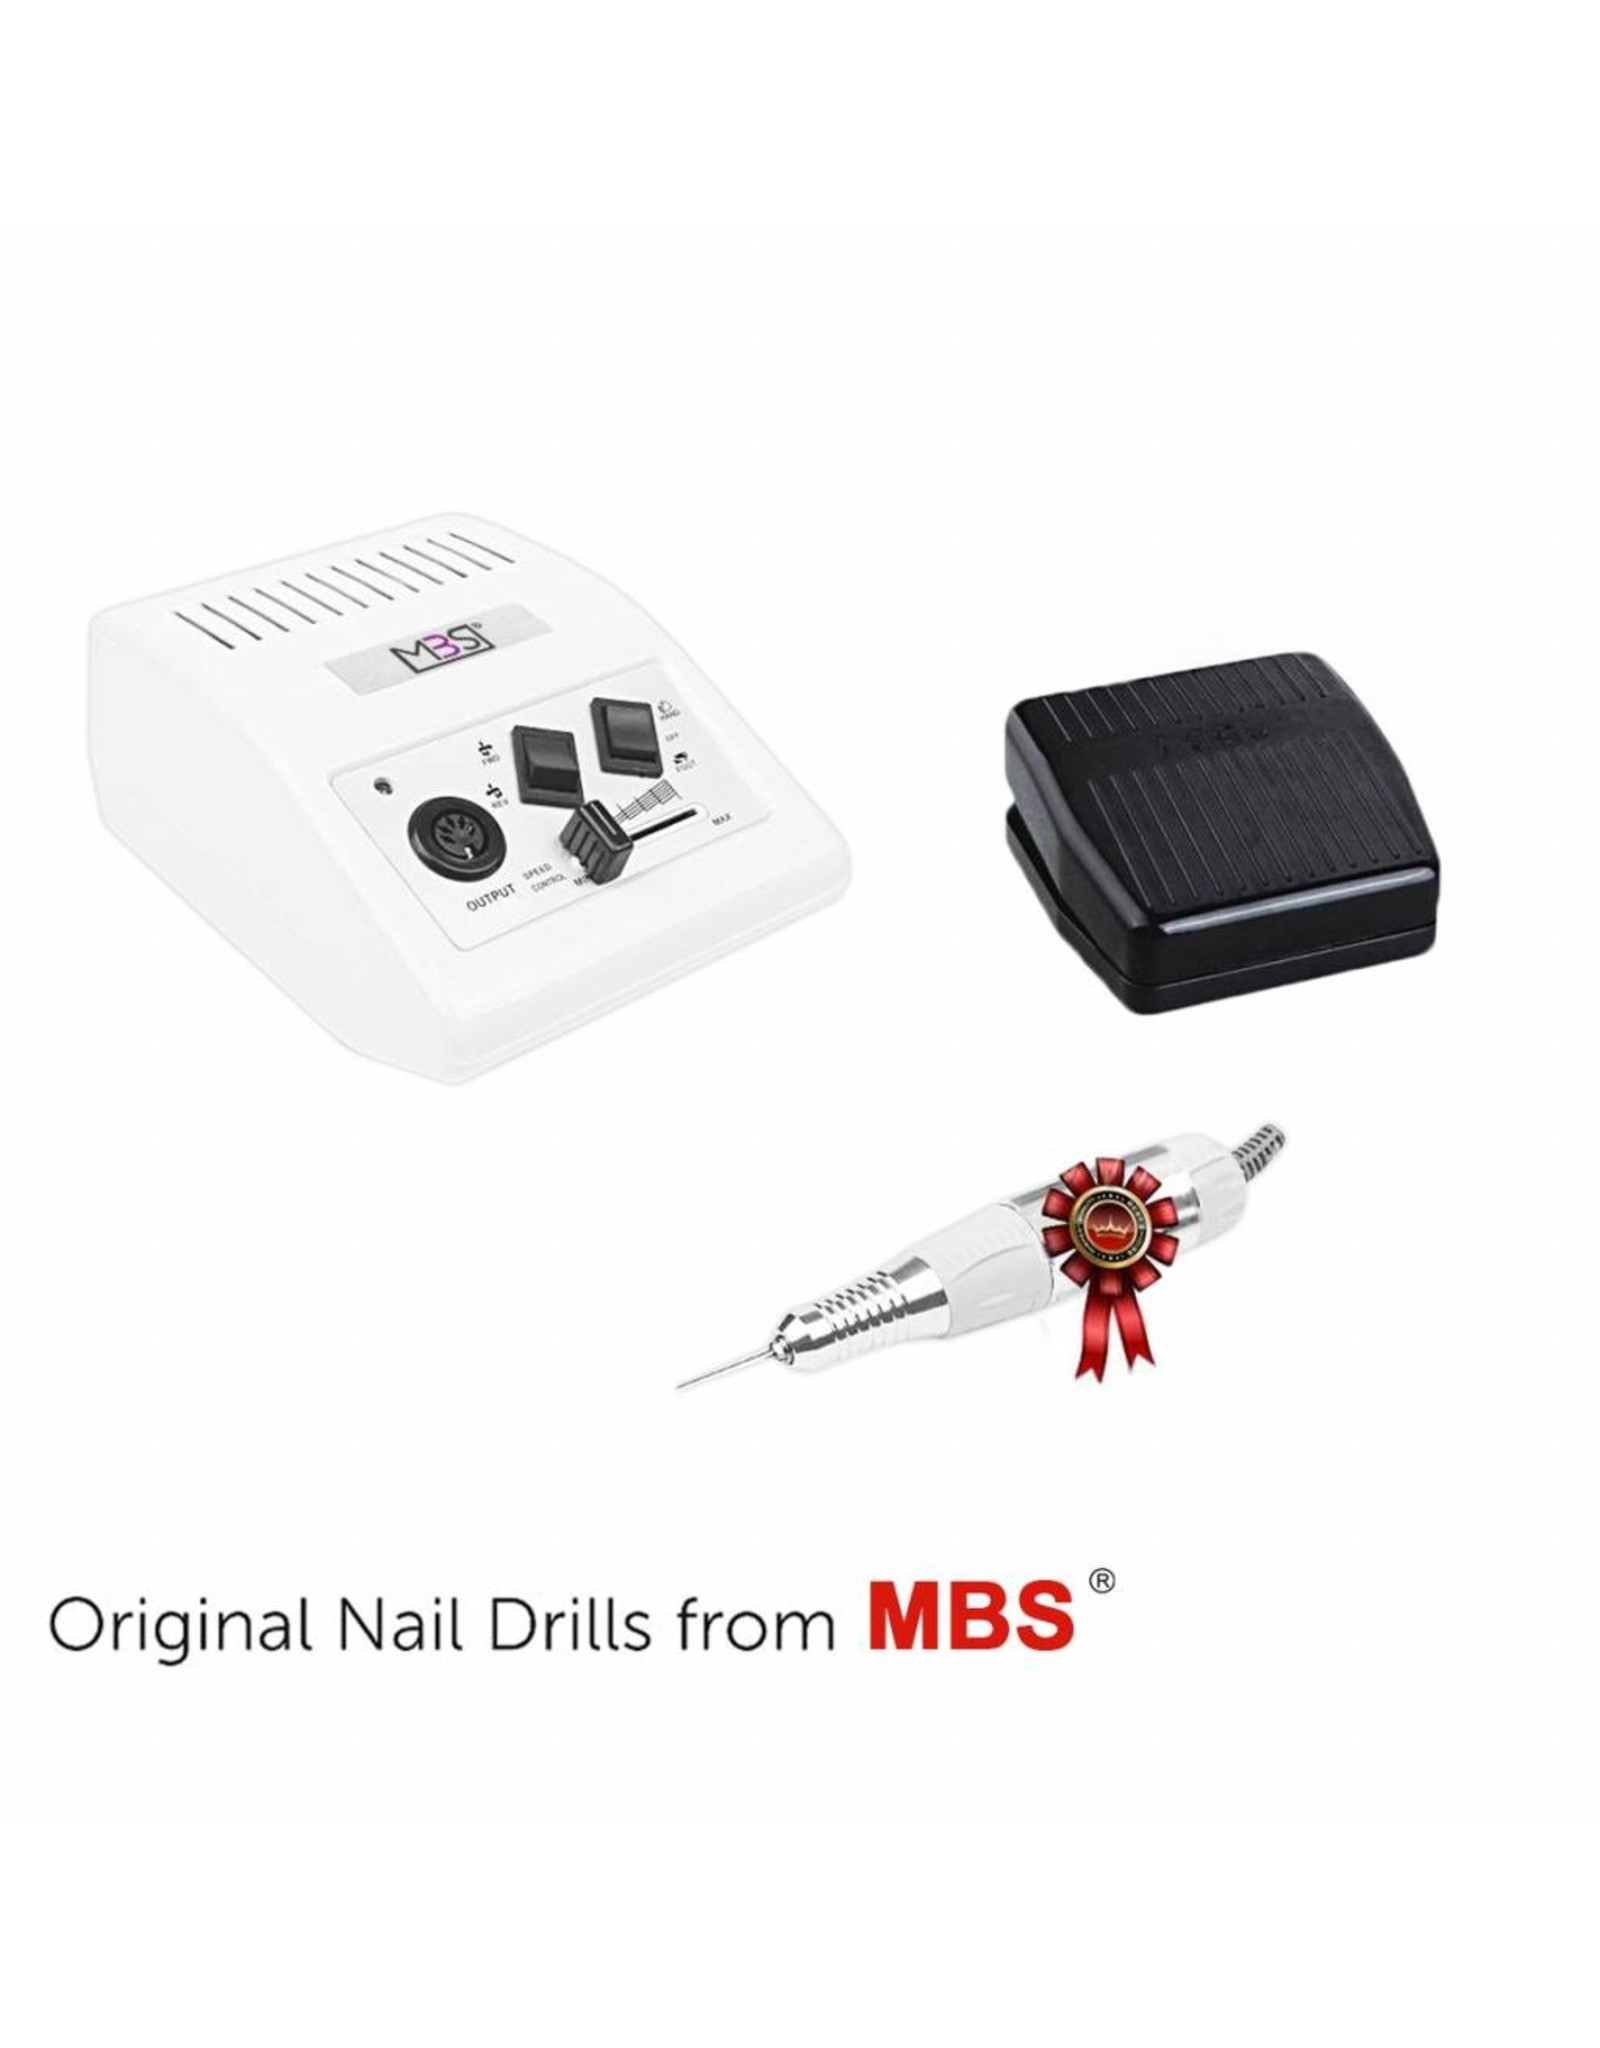 Mega Beauty Shop® Nagelfrees JD500 35Watt Originele + Keramische frees MBS®